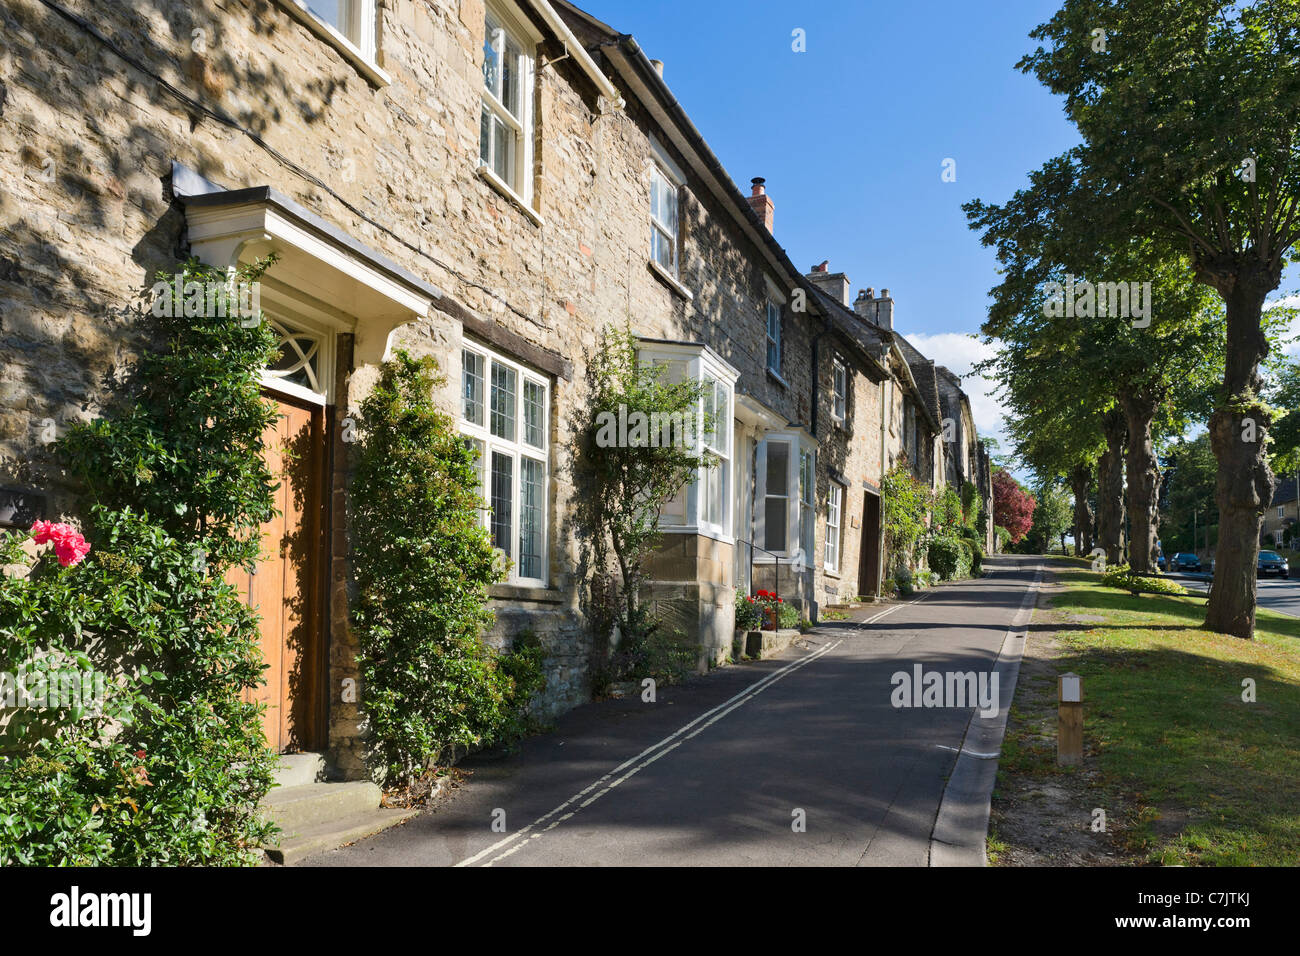 View up the main street in the Cotswold town of Burford, Oxfordshire, England, UK - Stock Image